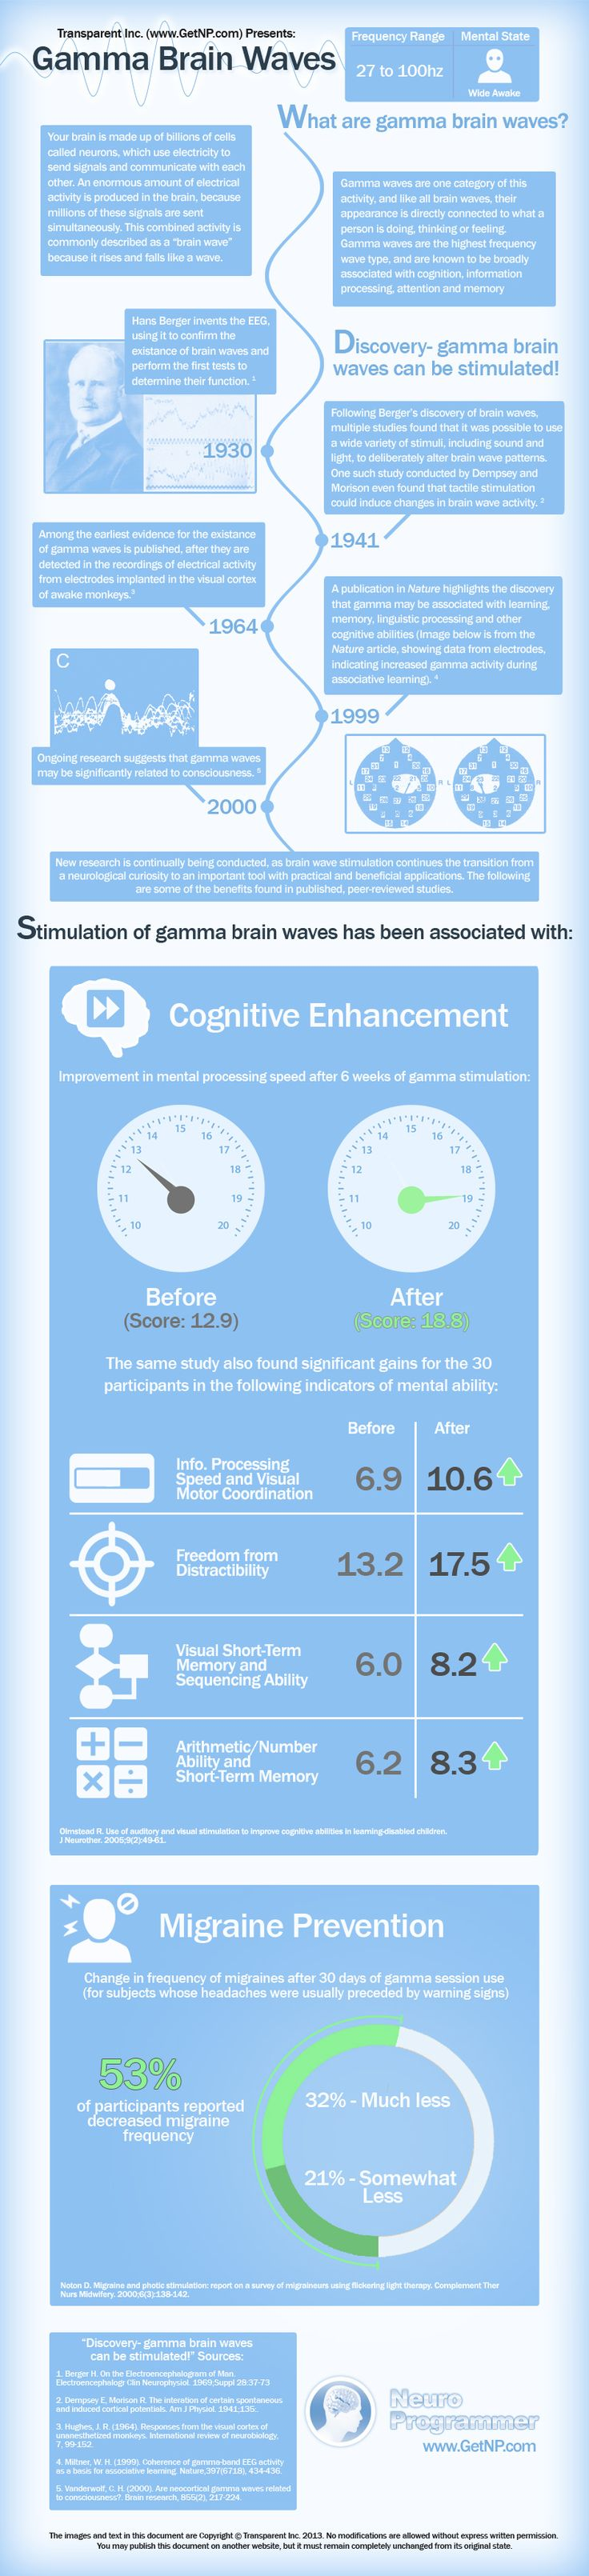 Gamma Brain Waves Infographic - Transparent (Follow the Link) > Corphttp://www.transparentcorp.com/products/?c=8261553